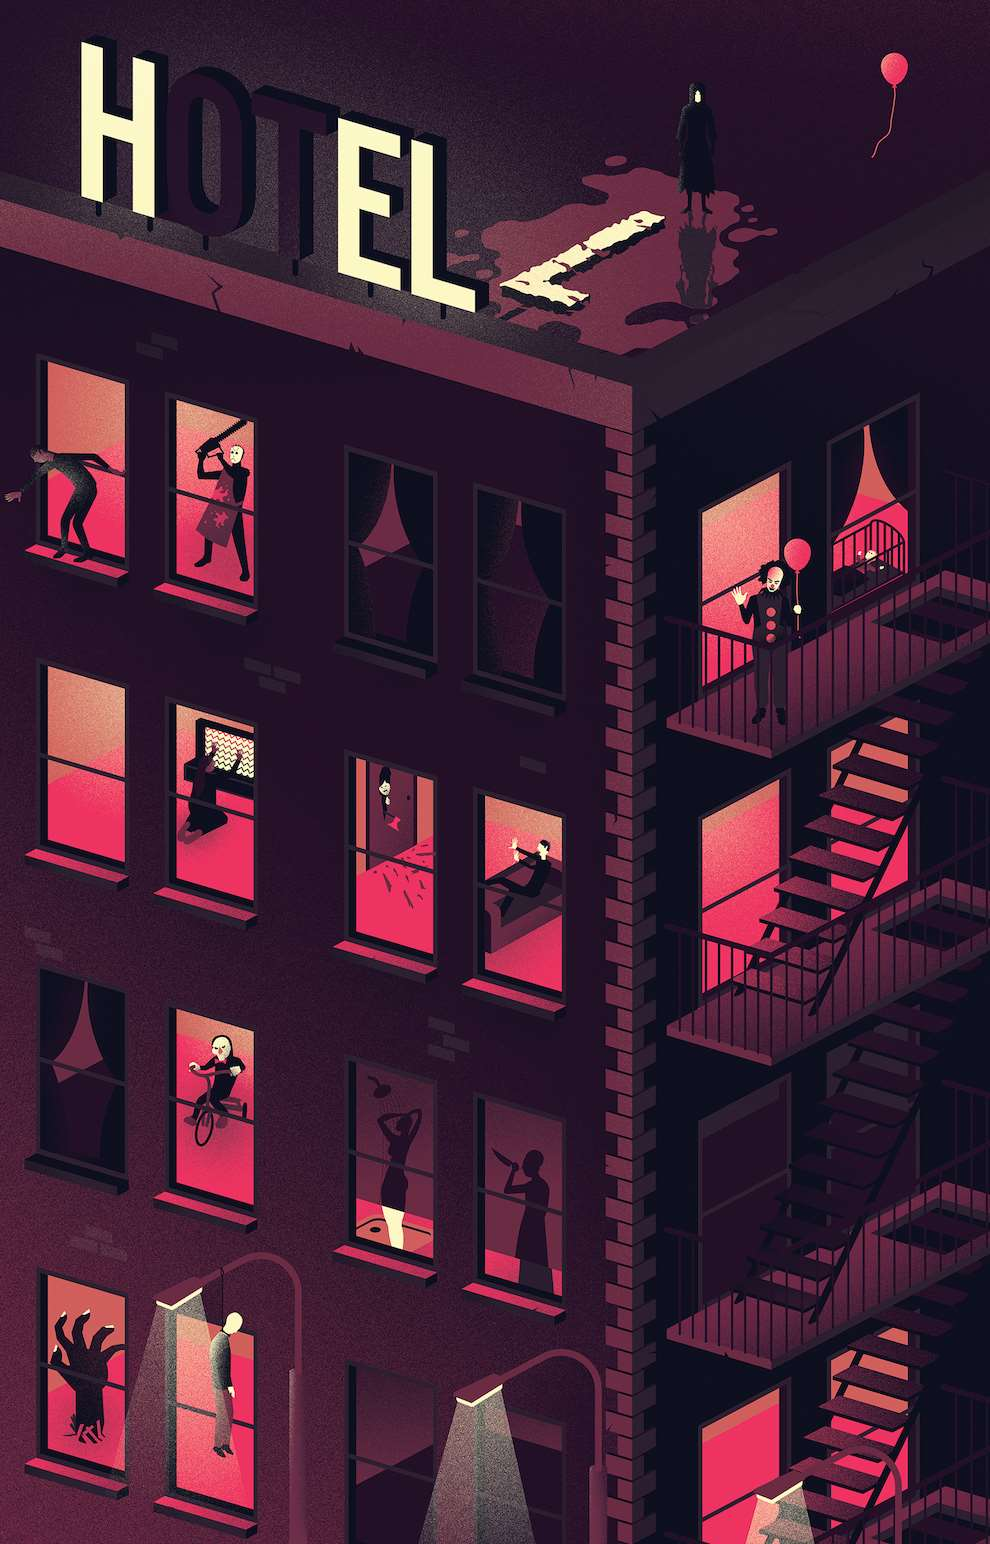 Jack Daly, Isometric digital illustration of a hotel featuring clown characters.